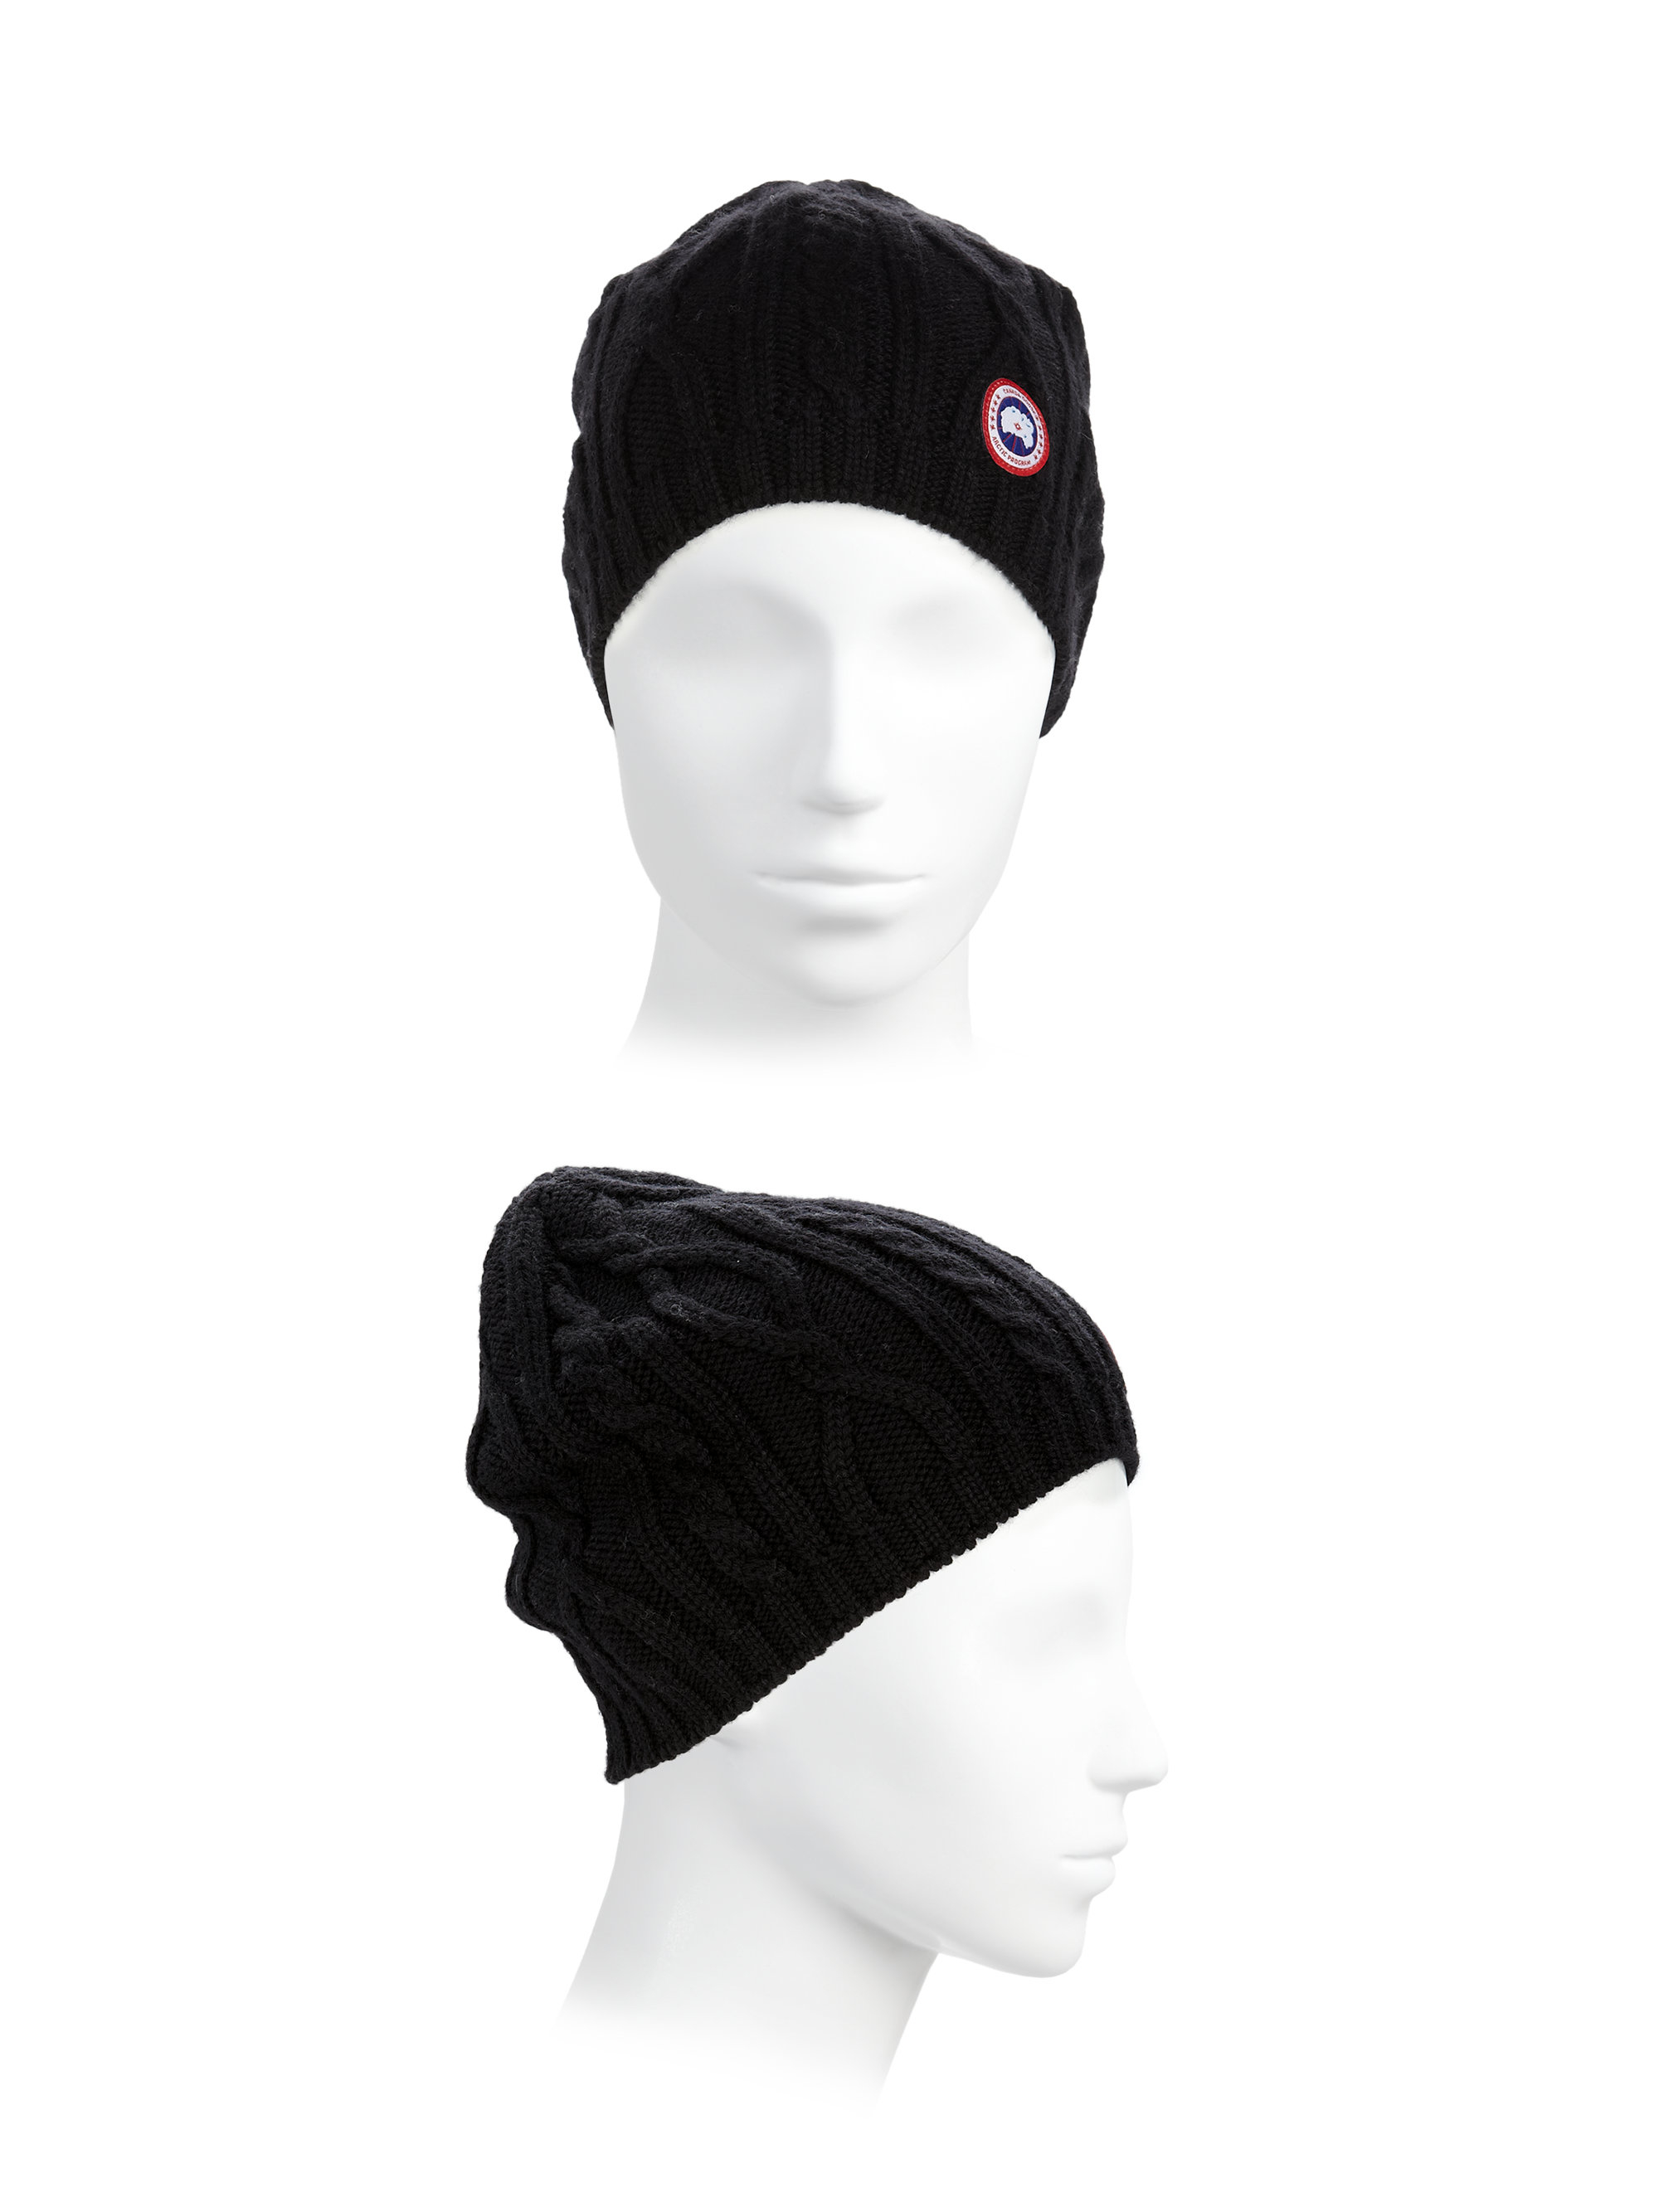 canada goose merino slouchy hat Canada Goose hats outlet fake - Canada goose Cable-knit Merino Wool Beanie in Black ...